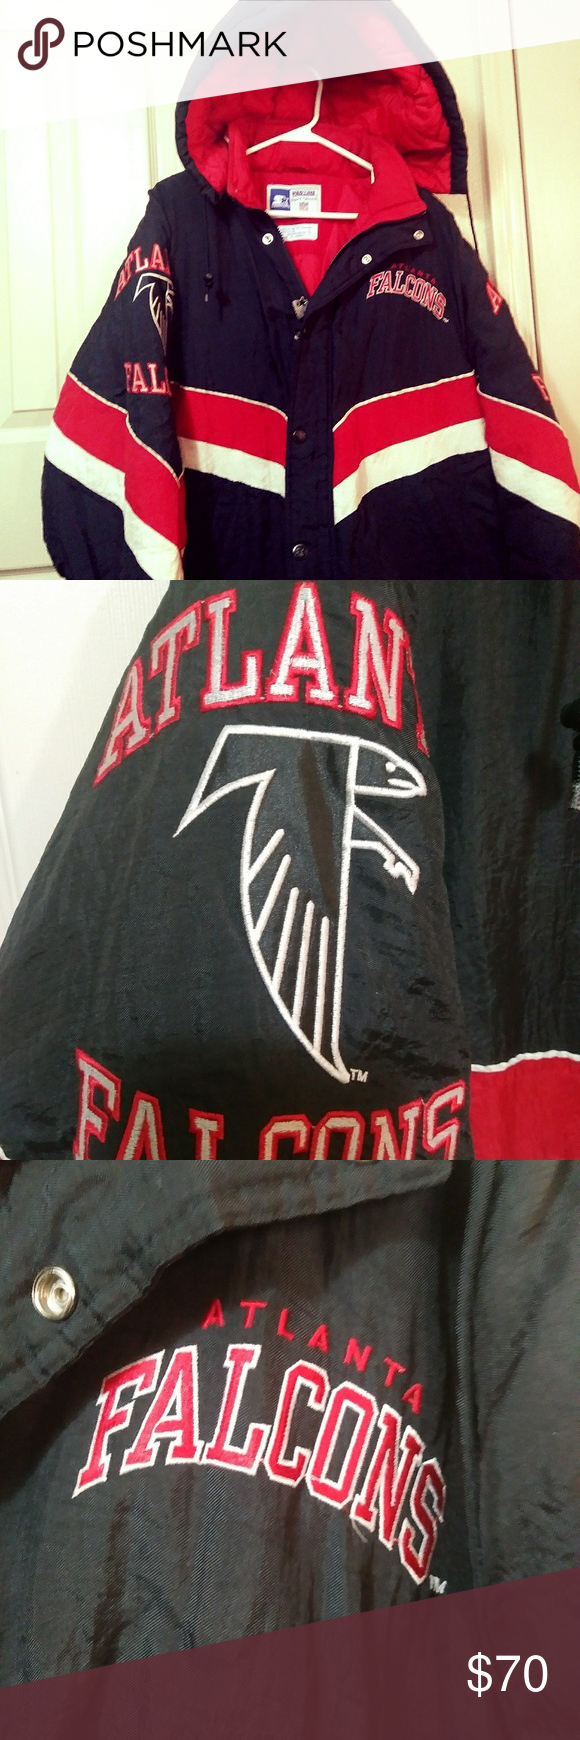 Vintage 90s Nfl Atlanta Falcons Starter Jacket Puffy Jacket Atlanta Falcons Clothes Design